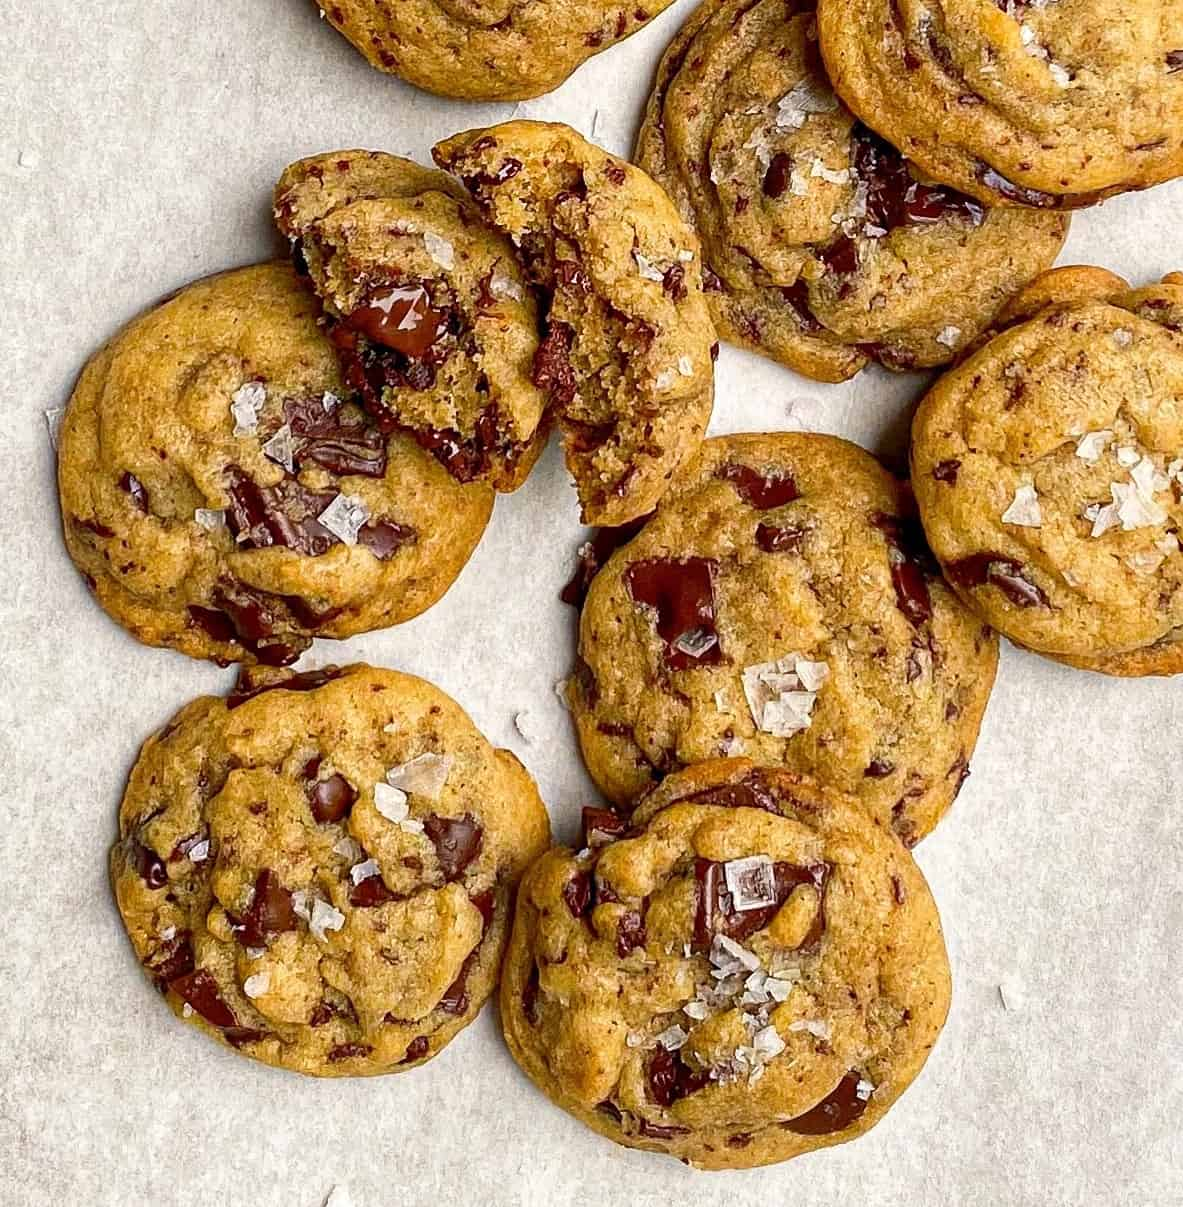 My Ultimate Chocolate Chip Cookie